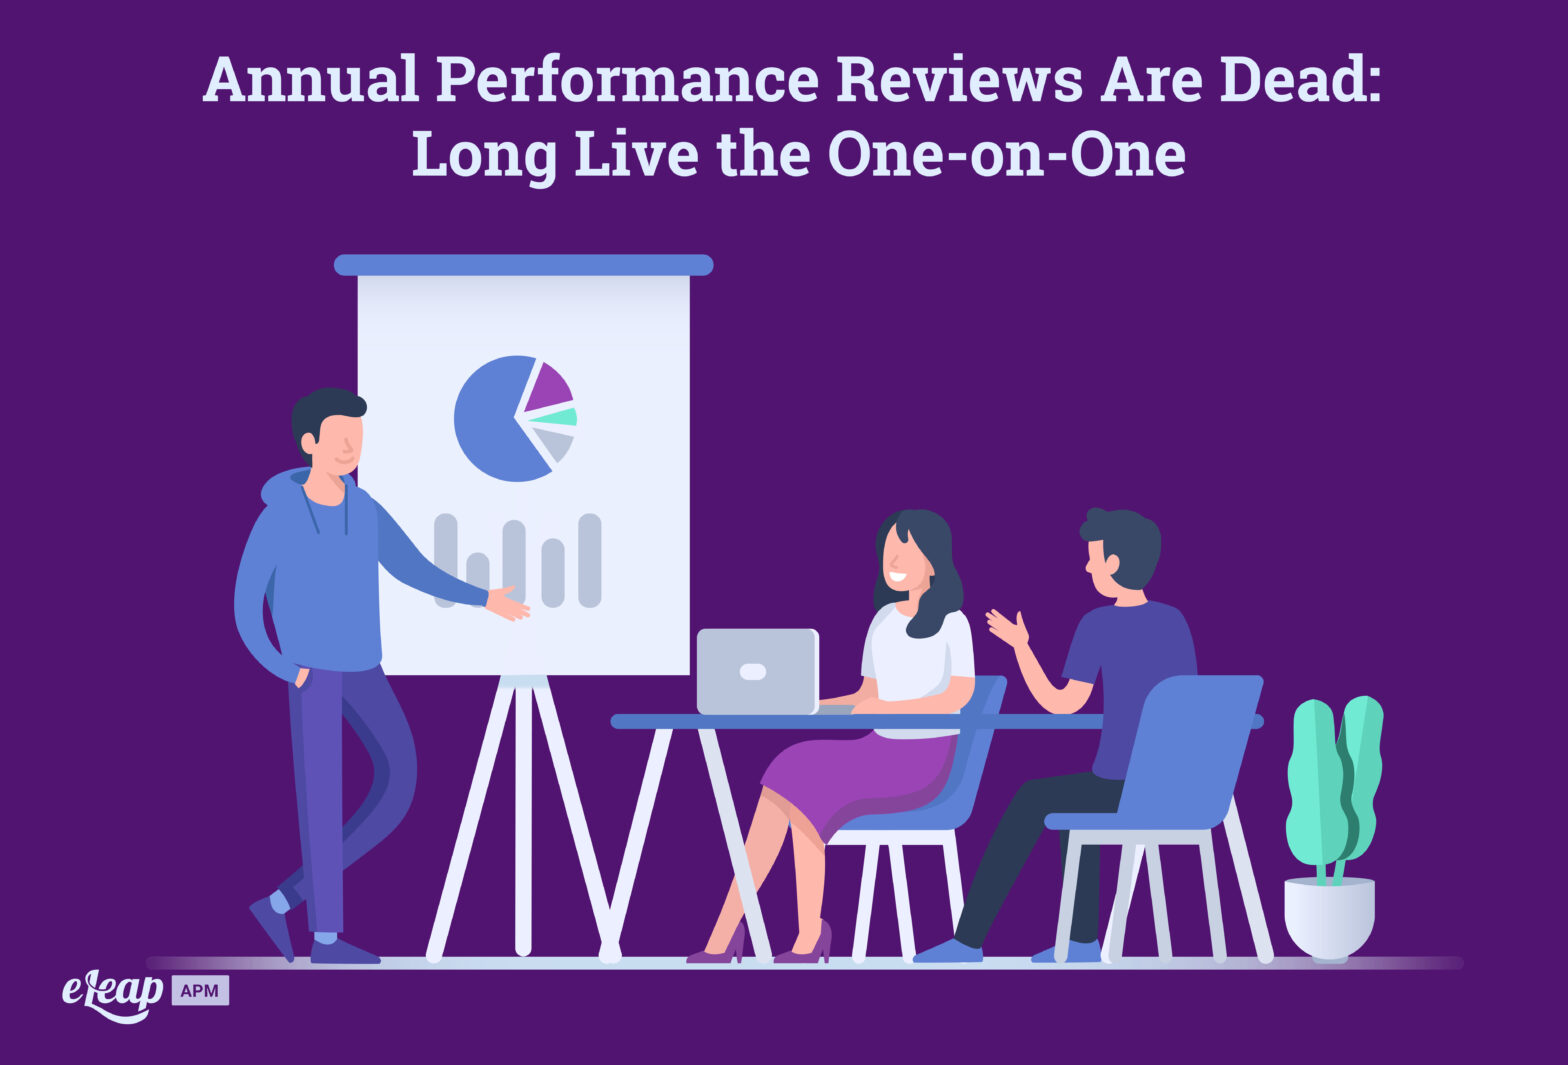 Annual Performance Reviews Are Dead: Long Live the One-on-One